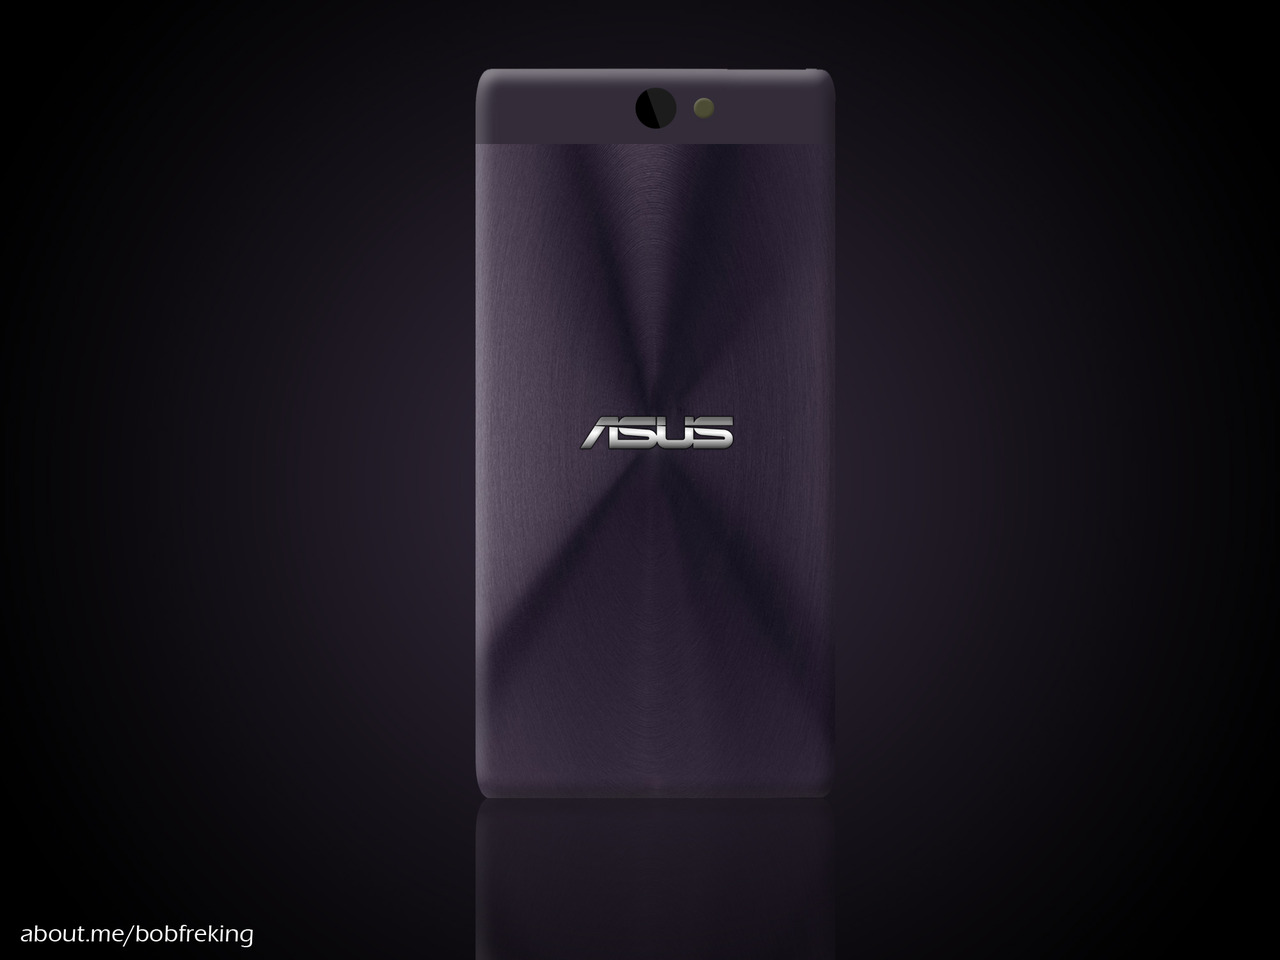 asus zenphone konzept smartphone auf basis der. Black Bedroom Furniture Sets. Home Design Ideas